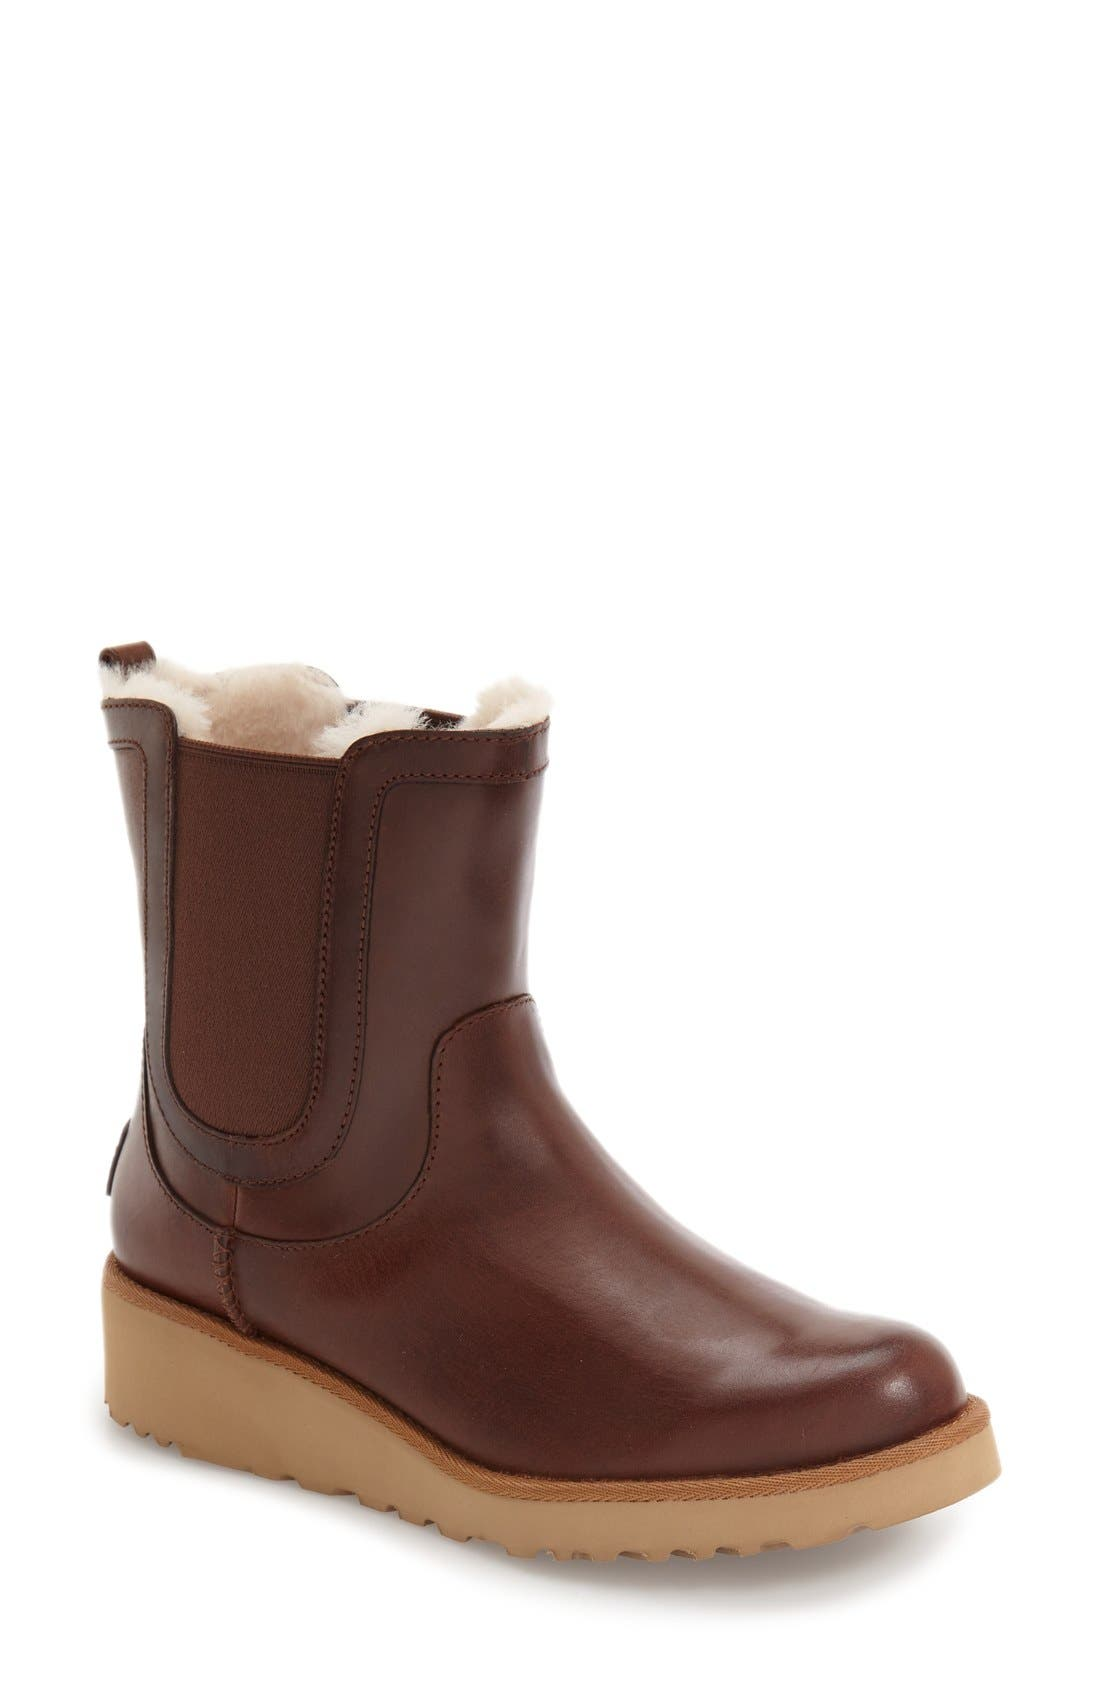 Alternate Image 1 Selected - UGG® Britt Winter Boot (Women)